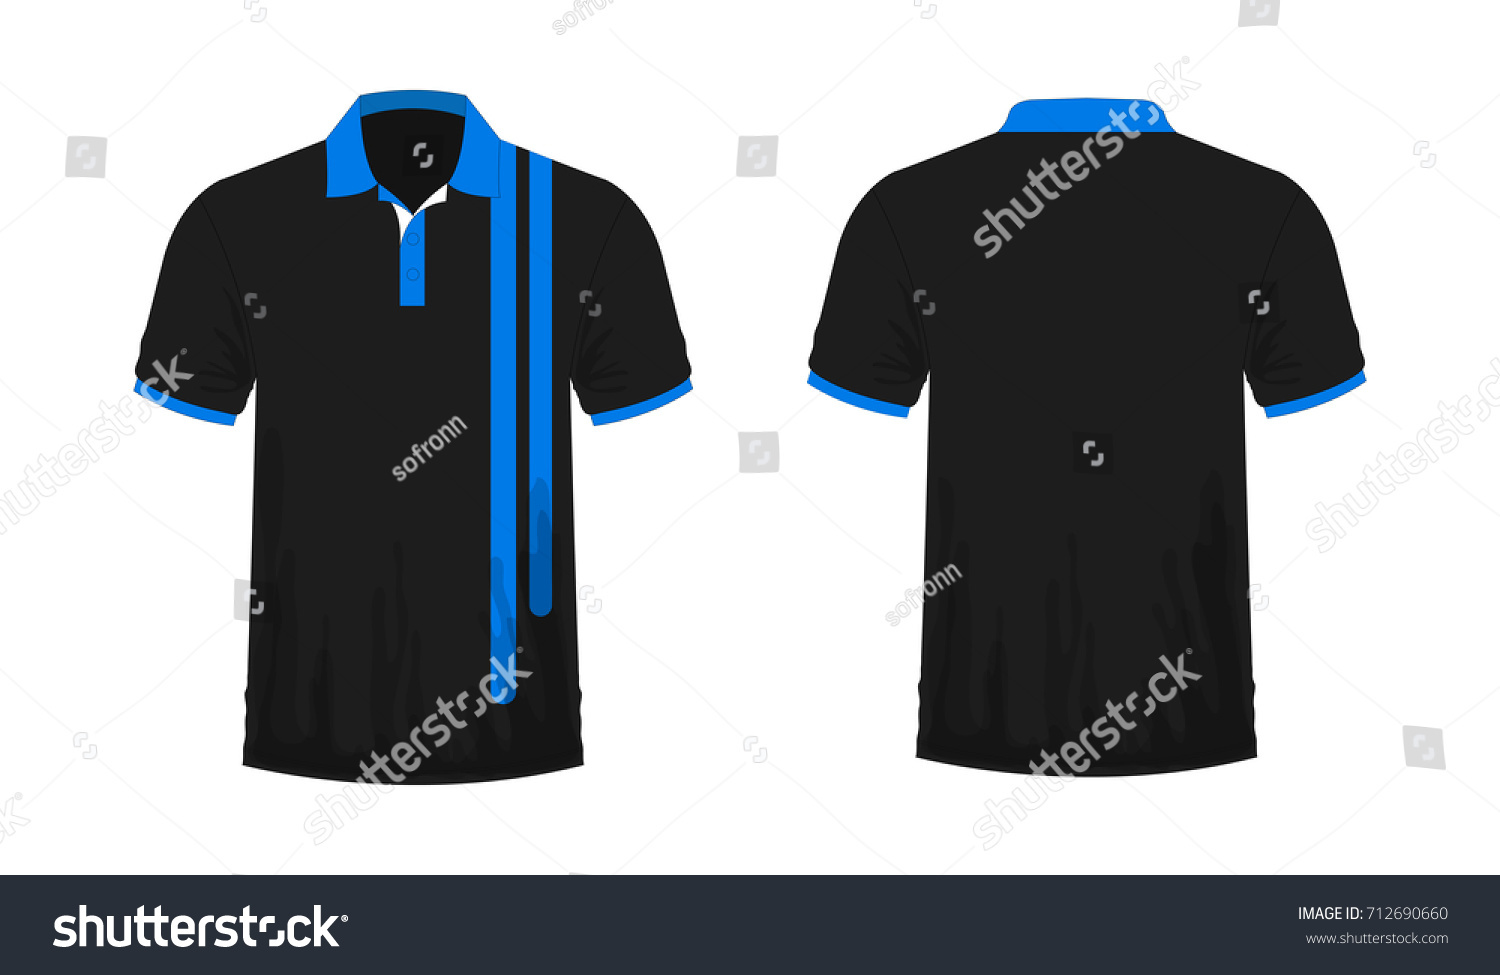 White t shirt eps - T Shirt Polo Blue And Black Template For Design On White Background Vector Illustration